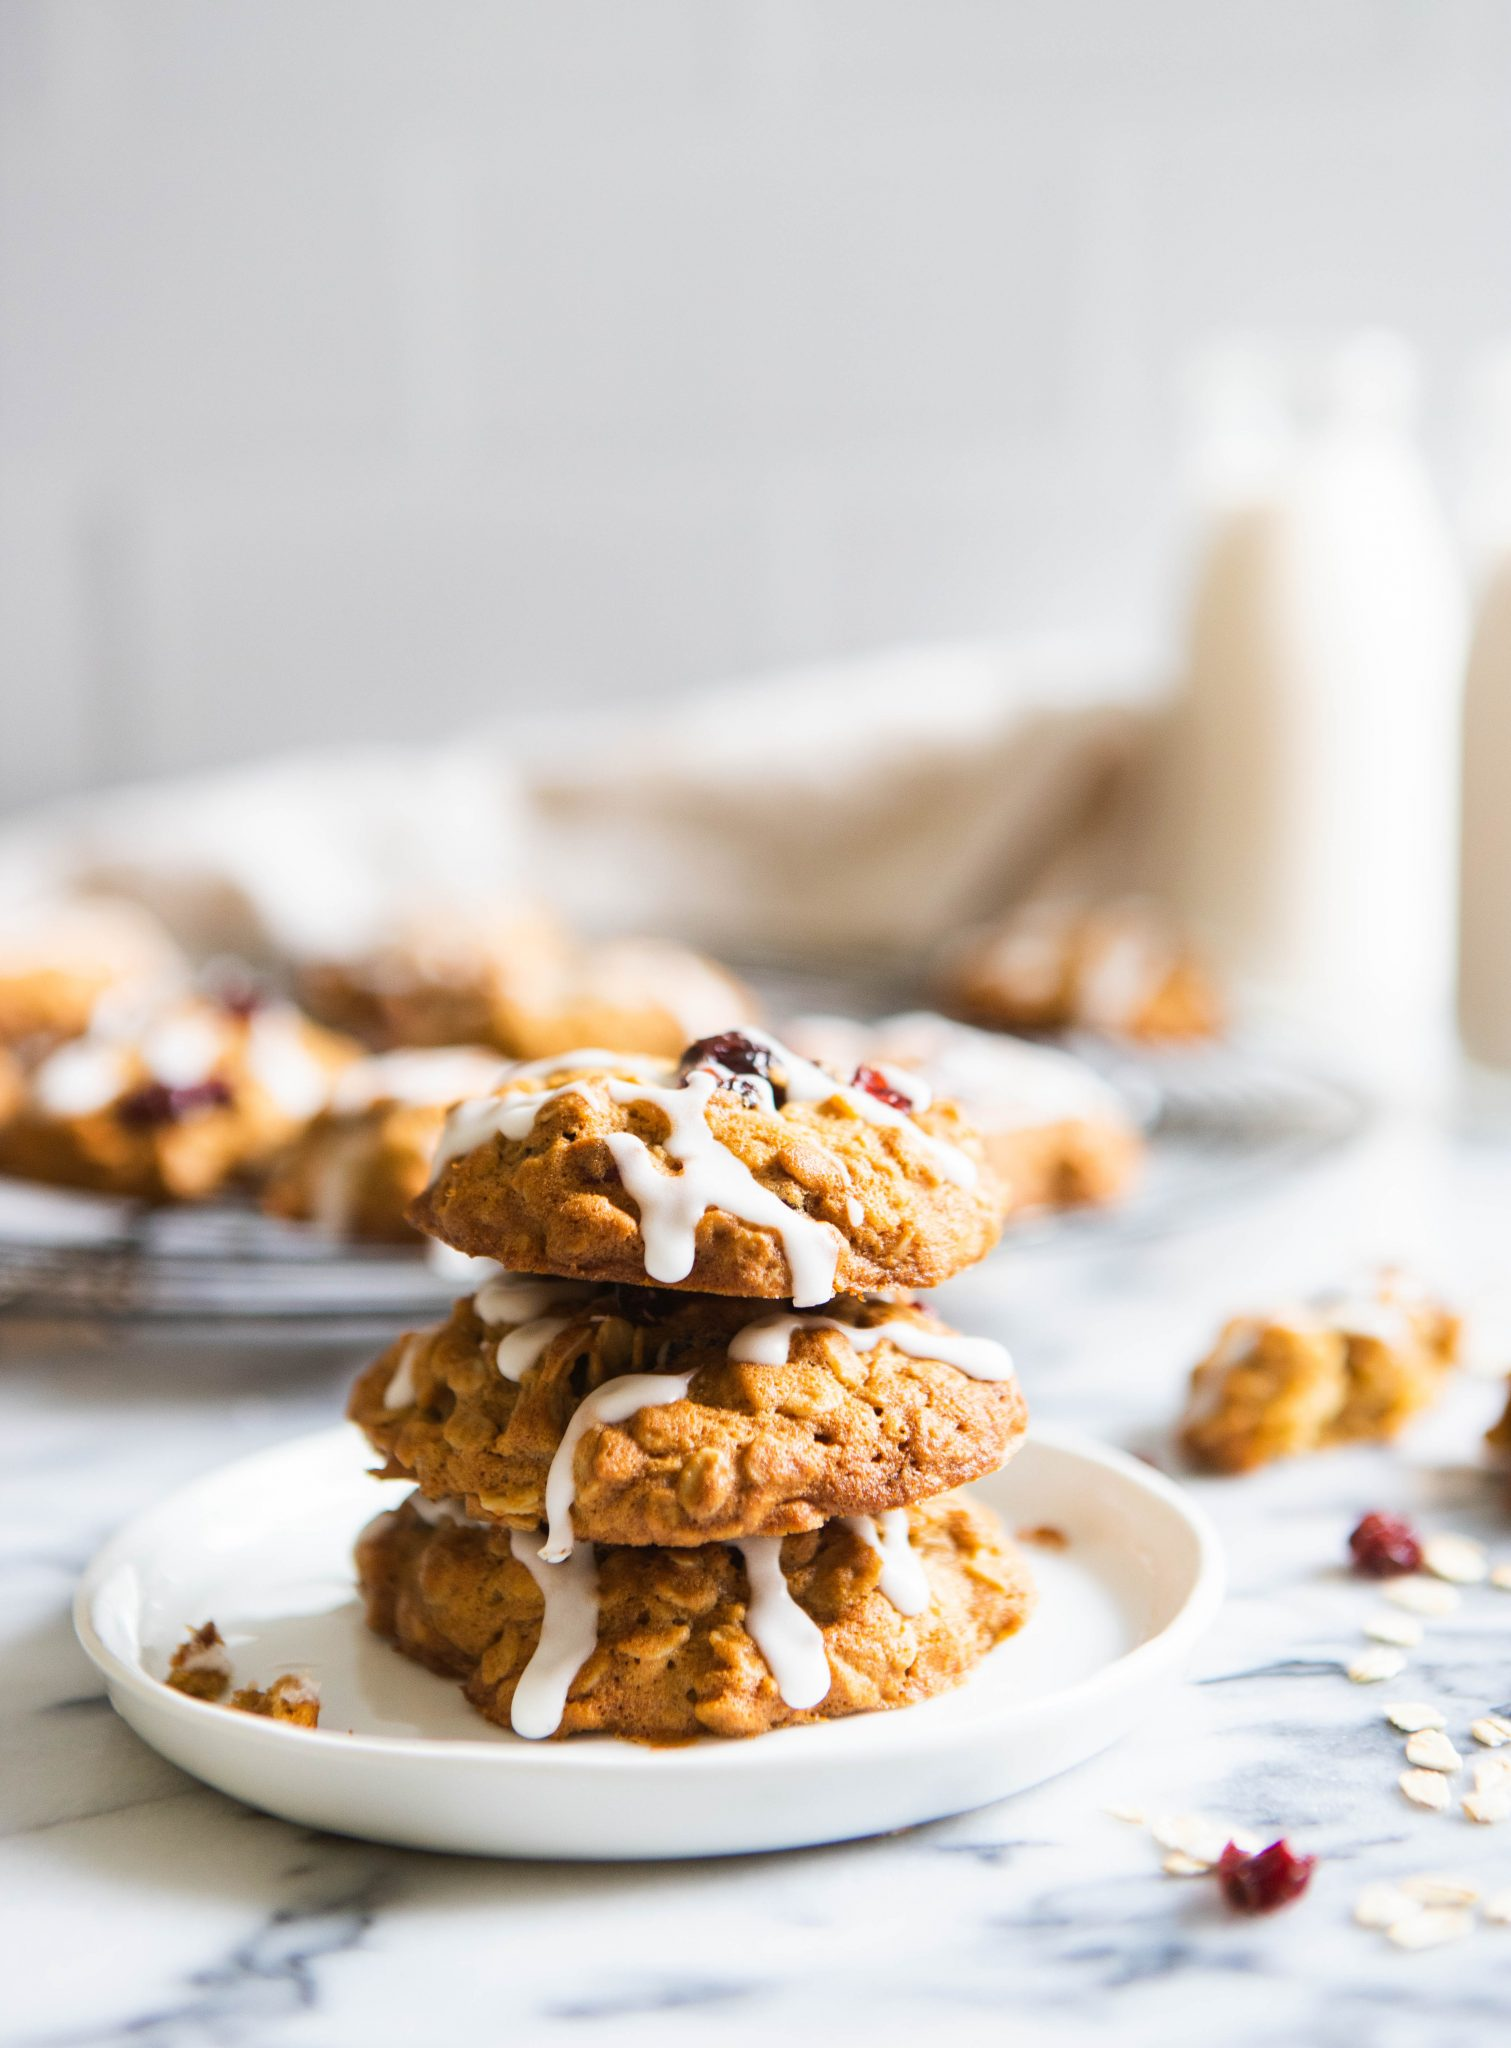 Three oatmeal cookies stacked on a plate with milk in the background